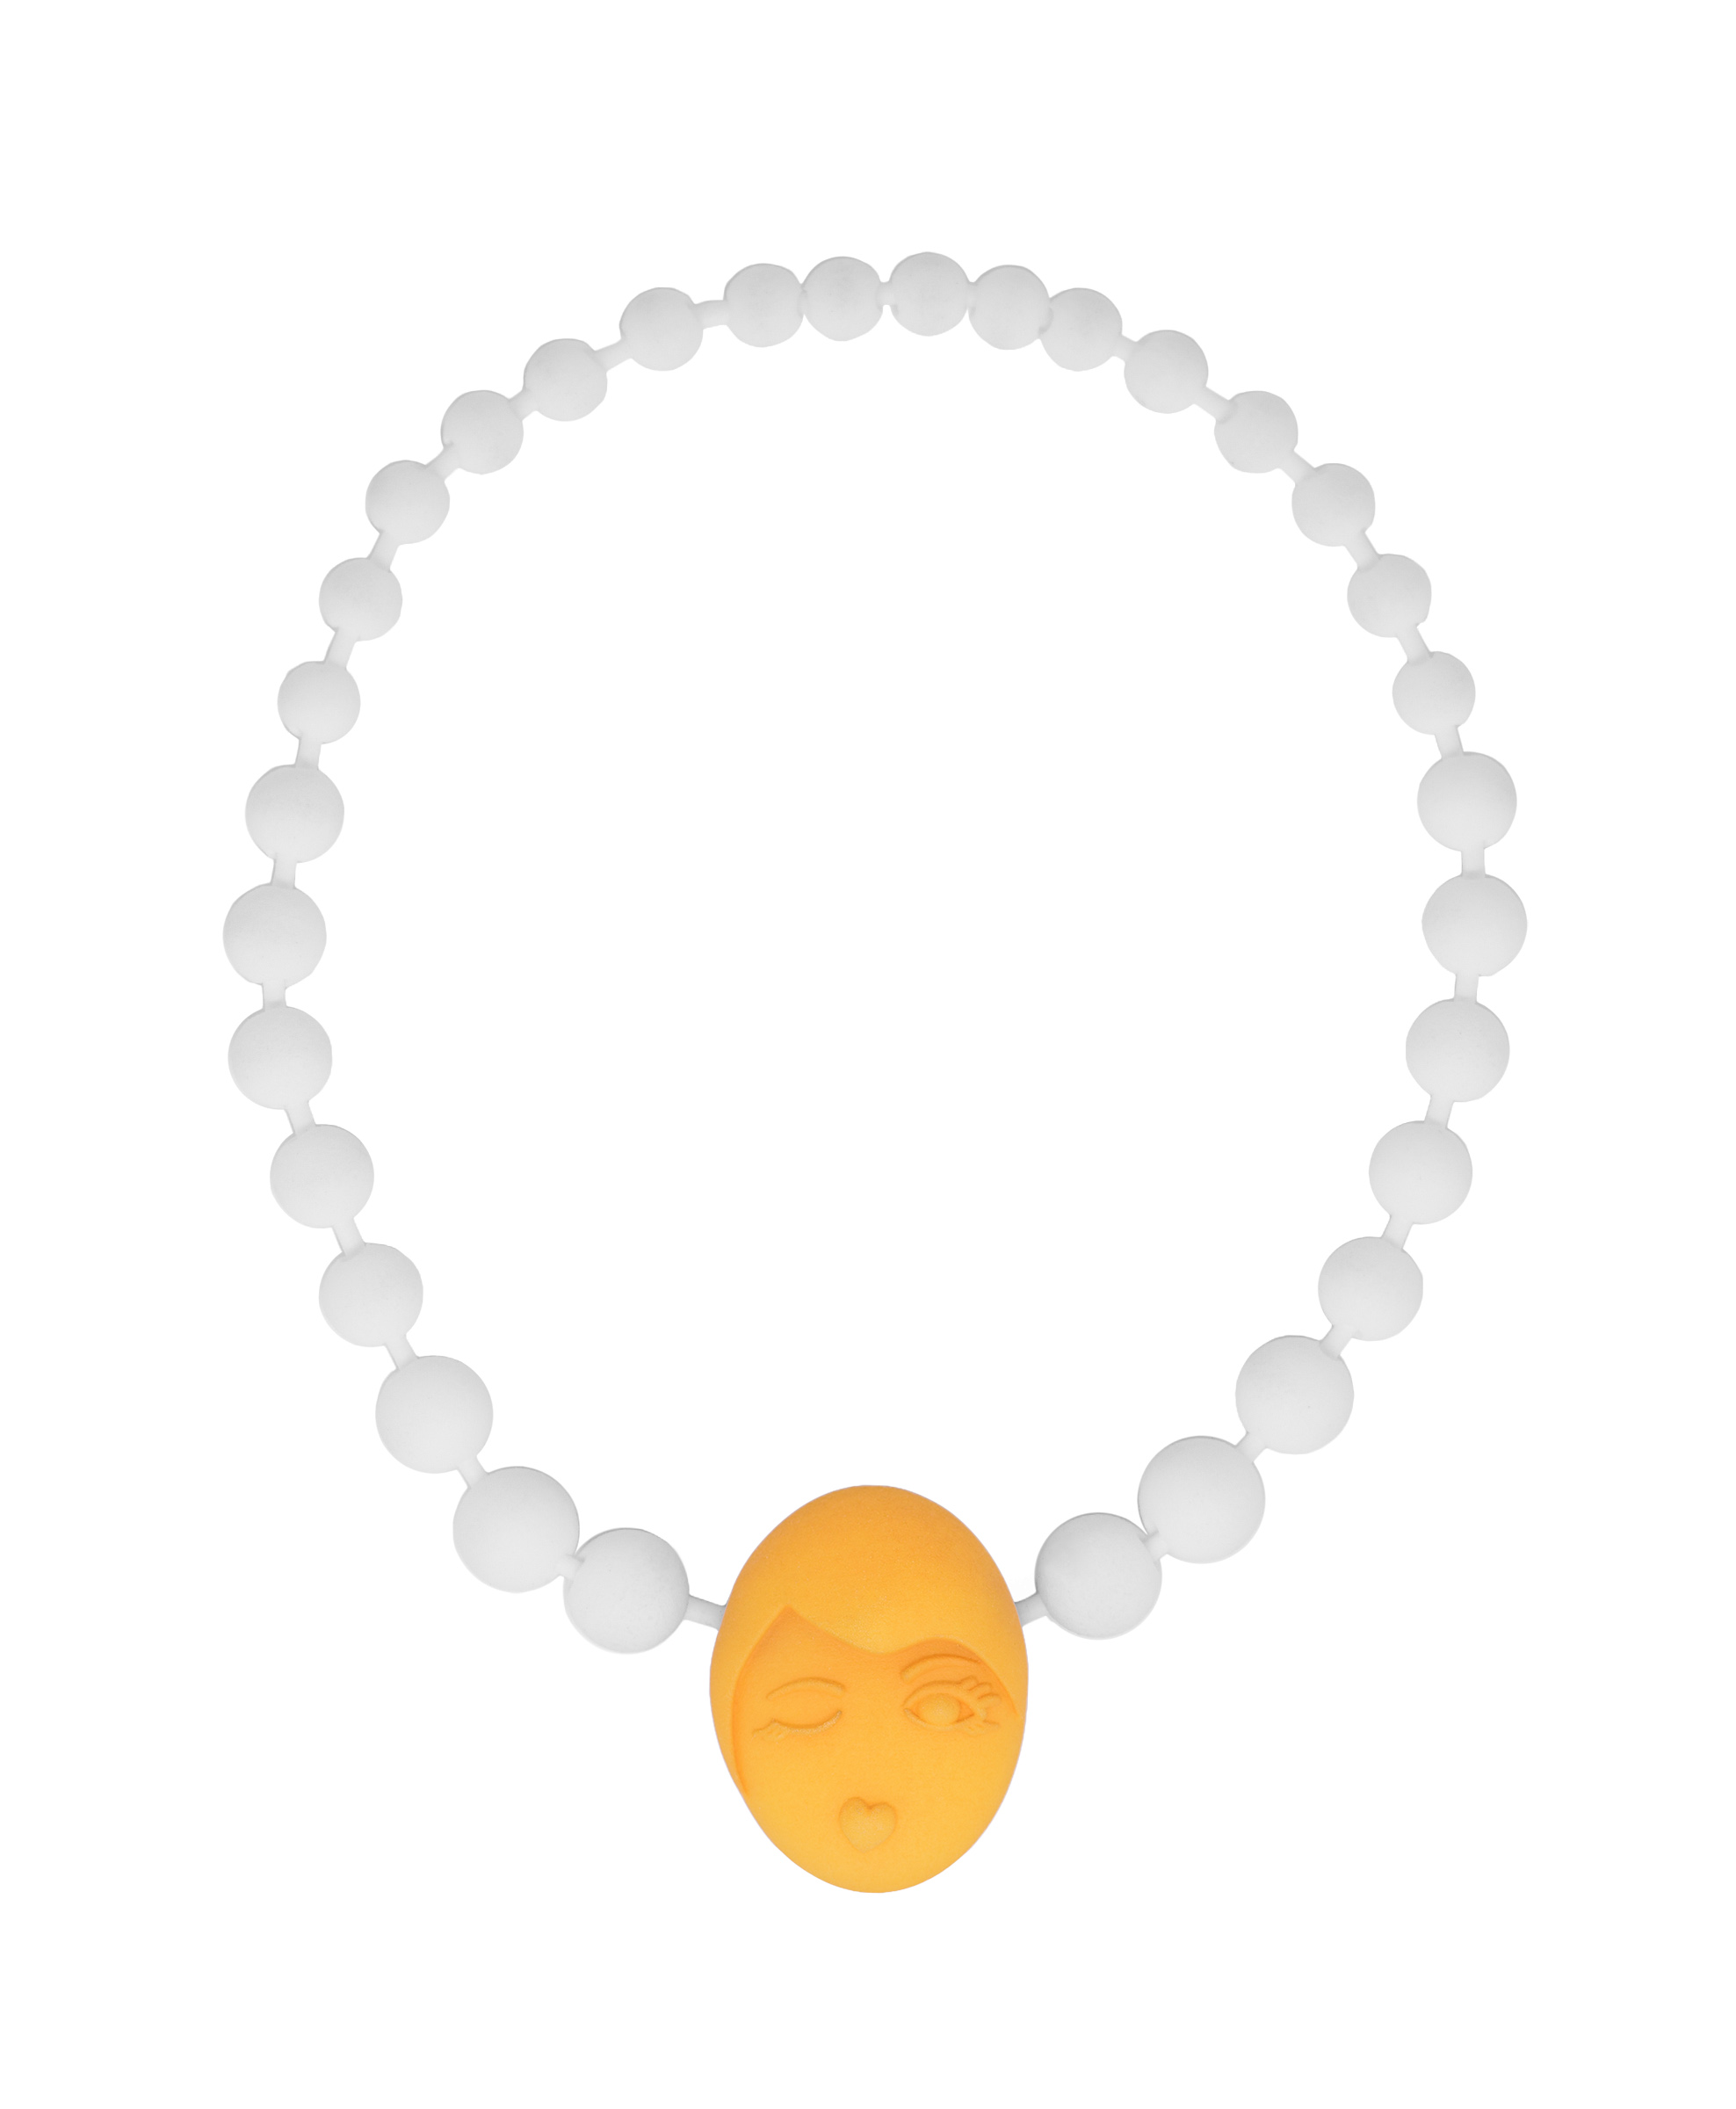 funny orange emotions pearl necklace